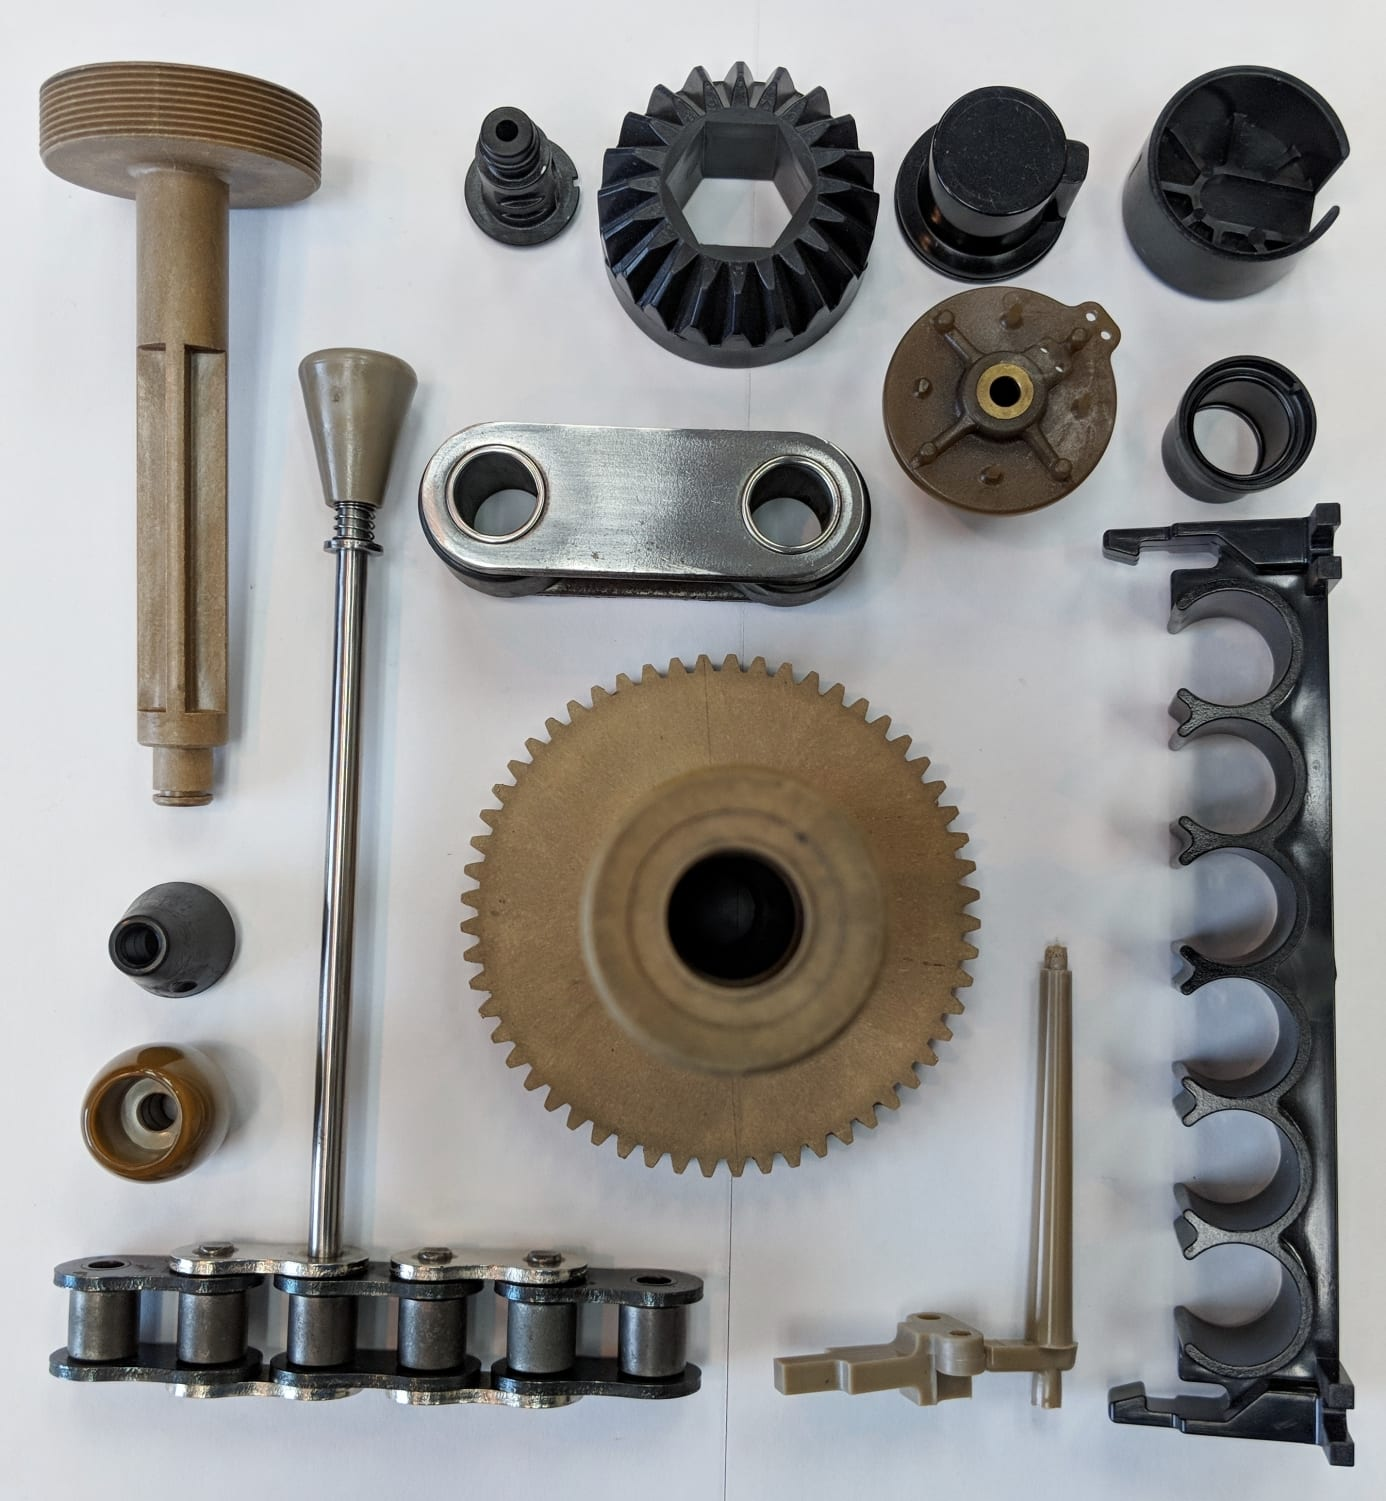 Thermoplastics parts for the Food Processing Industry